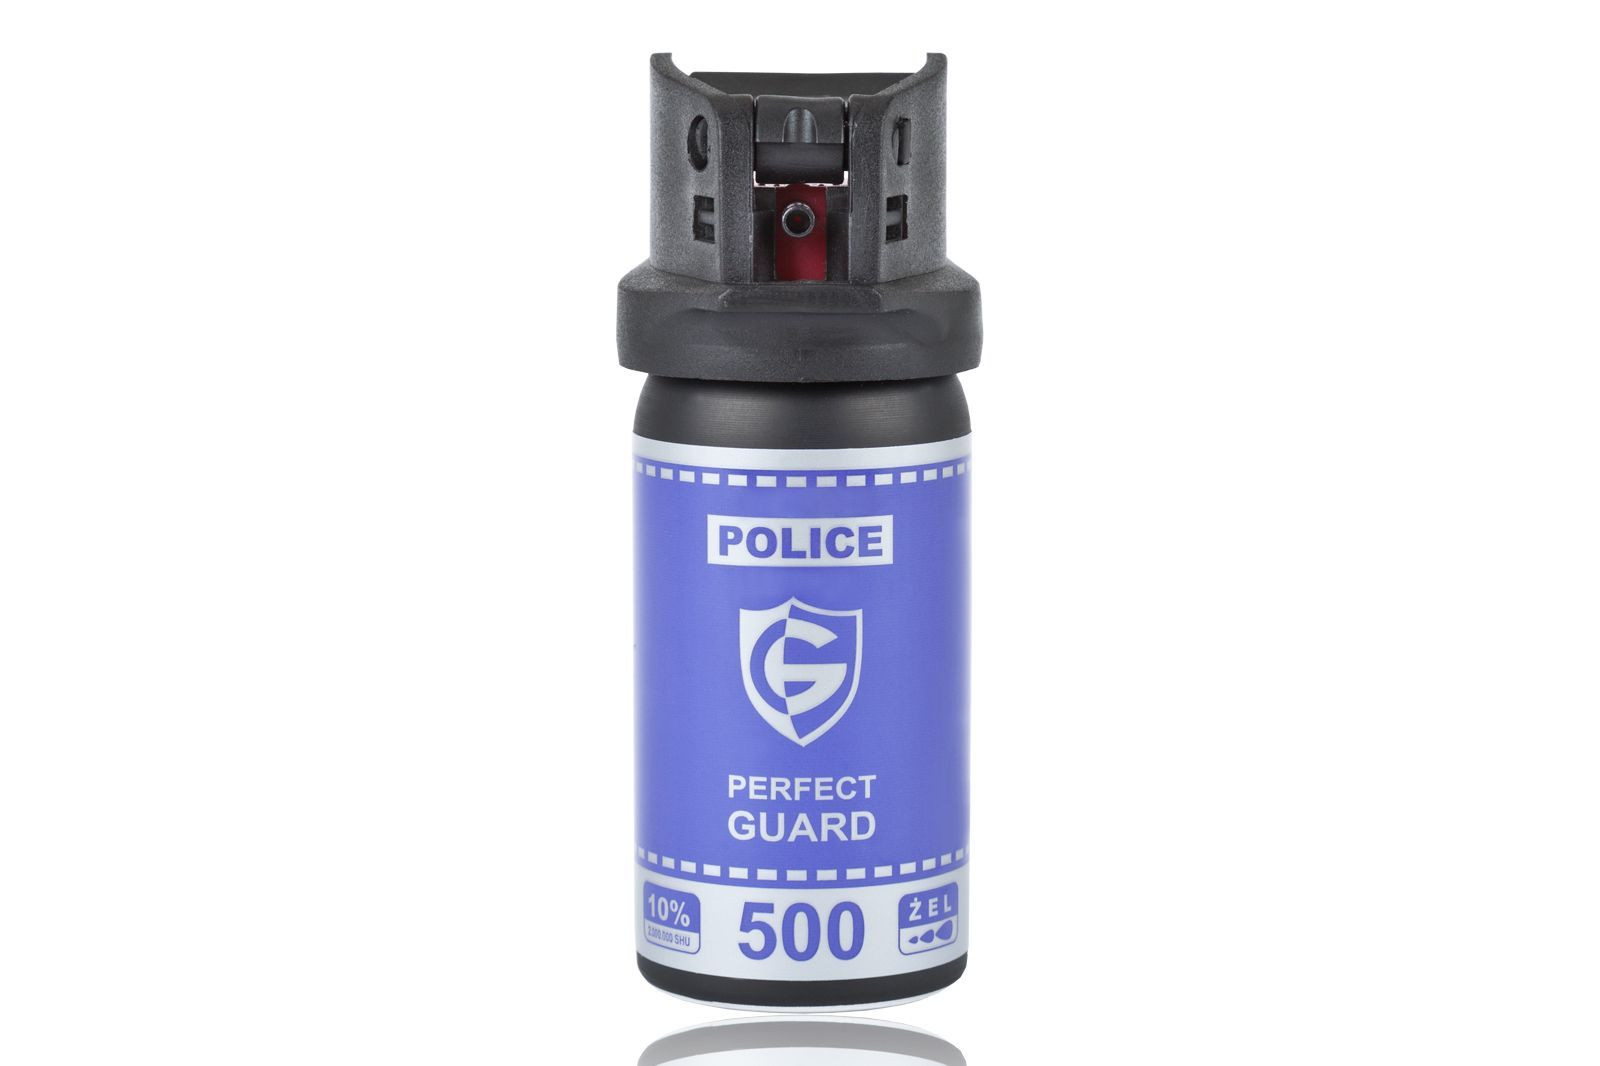 Gaz pieprzowy Police Perfect Guard 500 - 50 ml. żel (PG.500)